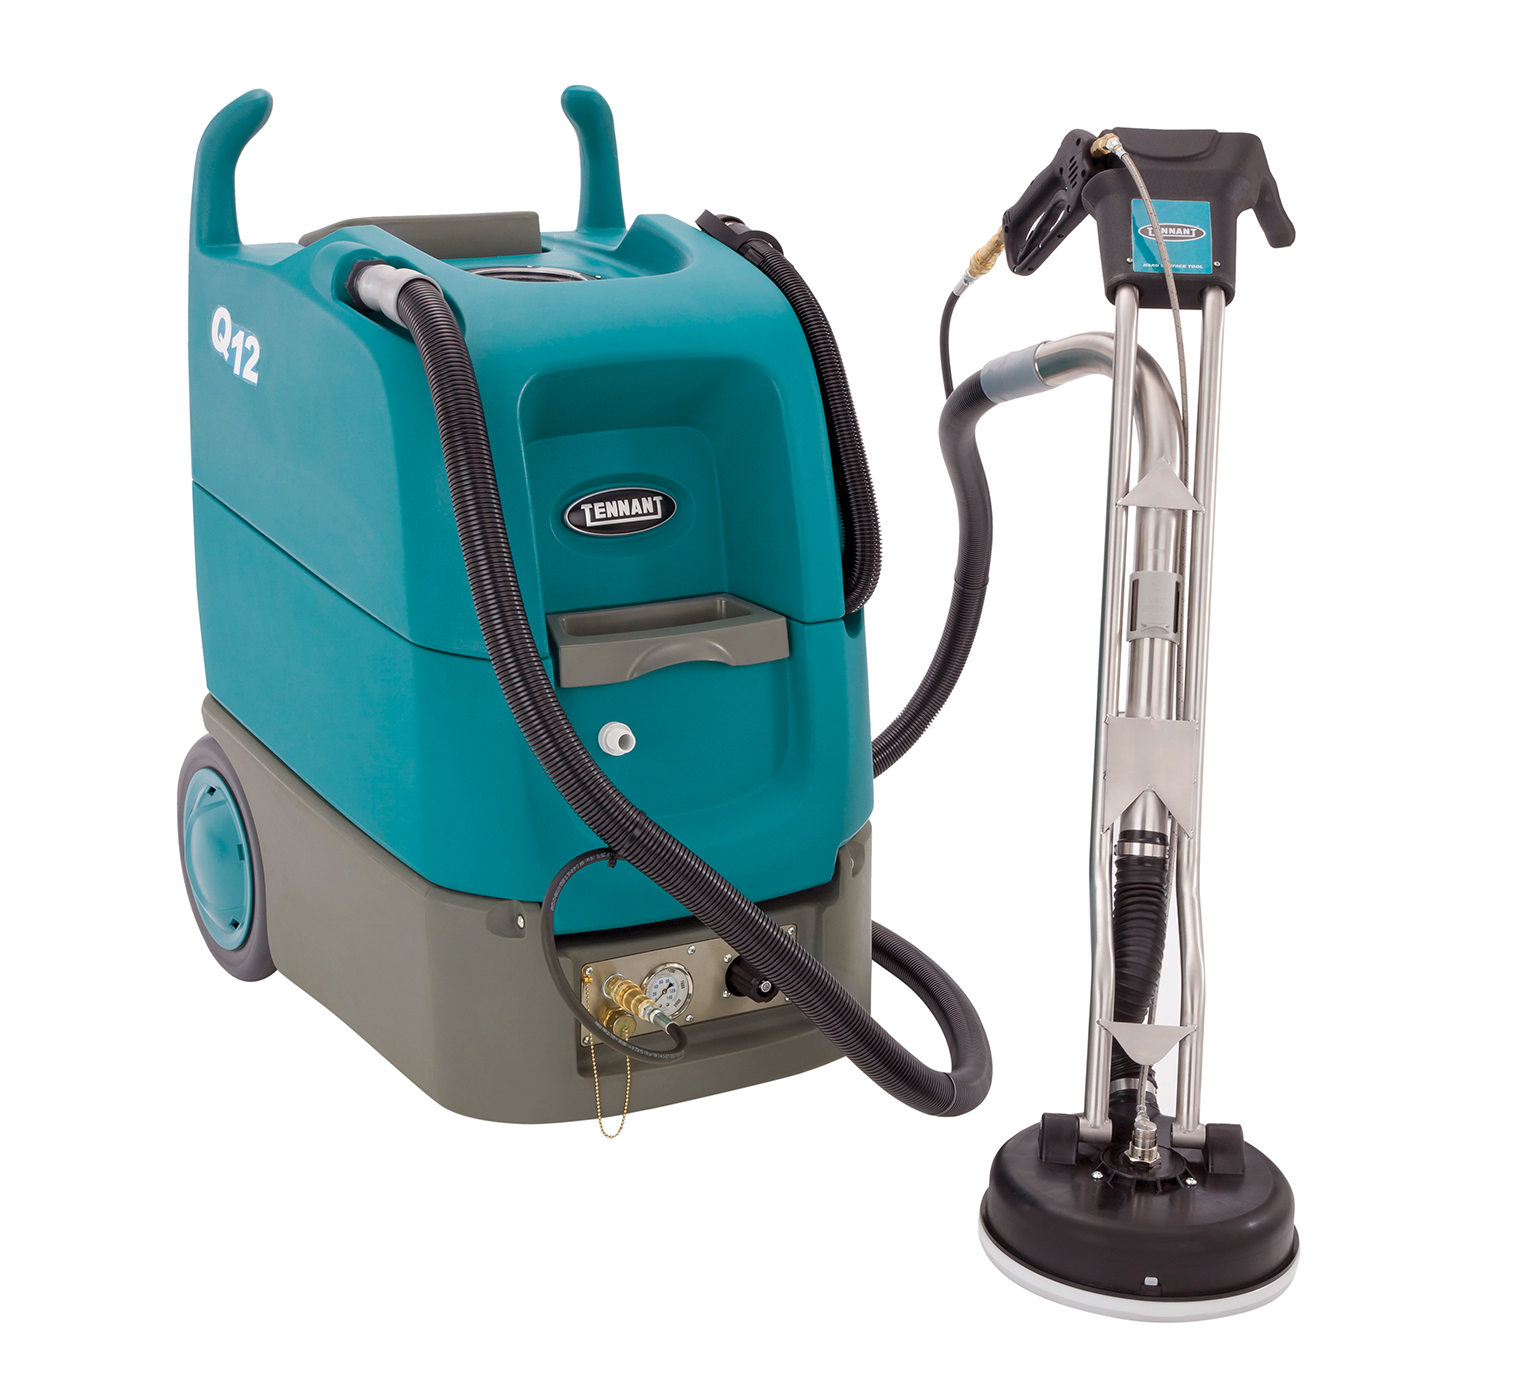 Tennant Q12 Multi-Surface Cleaning Machine